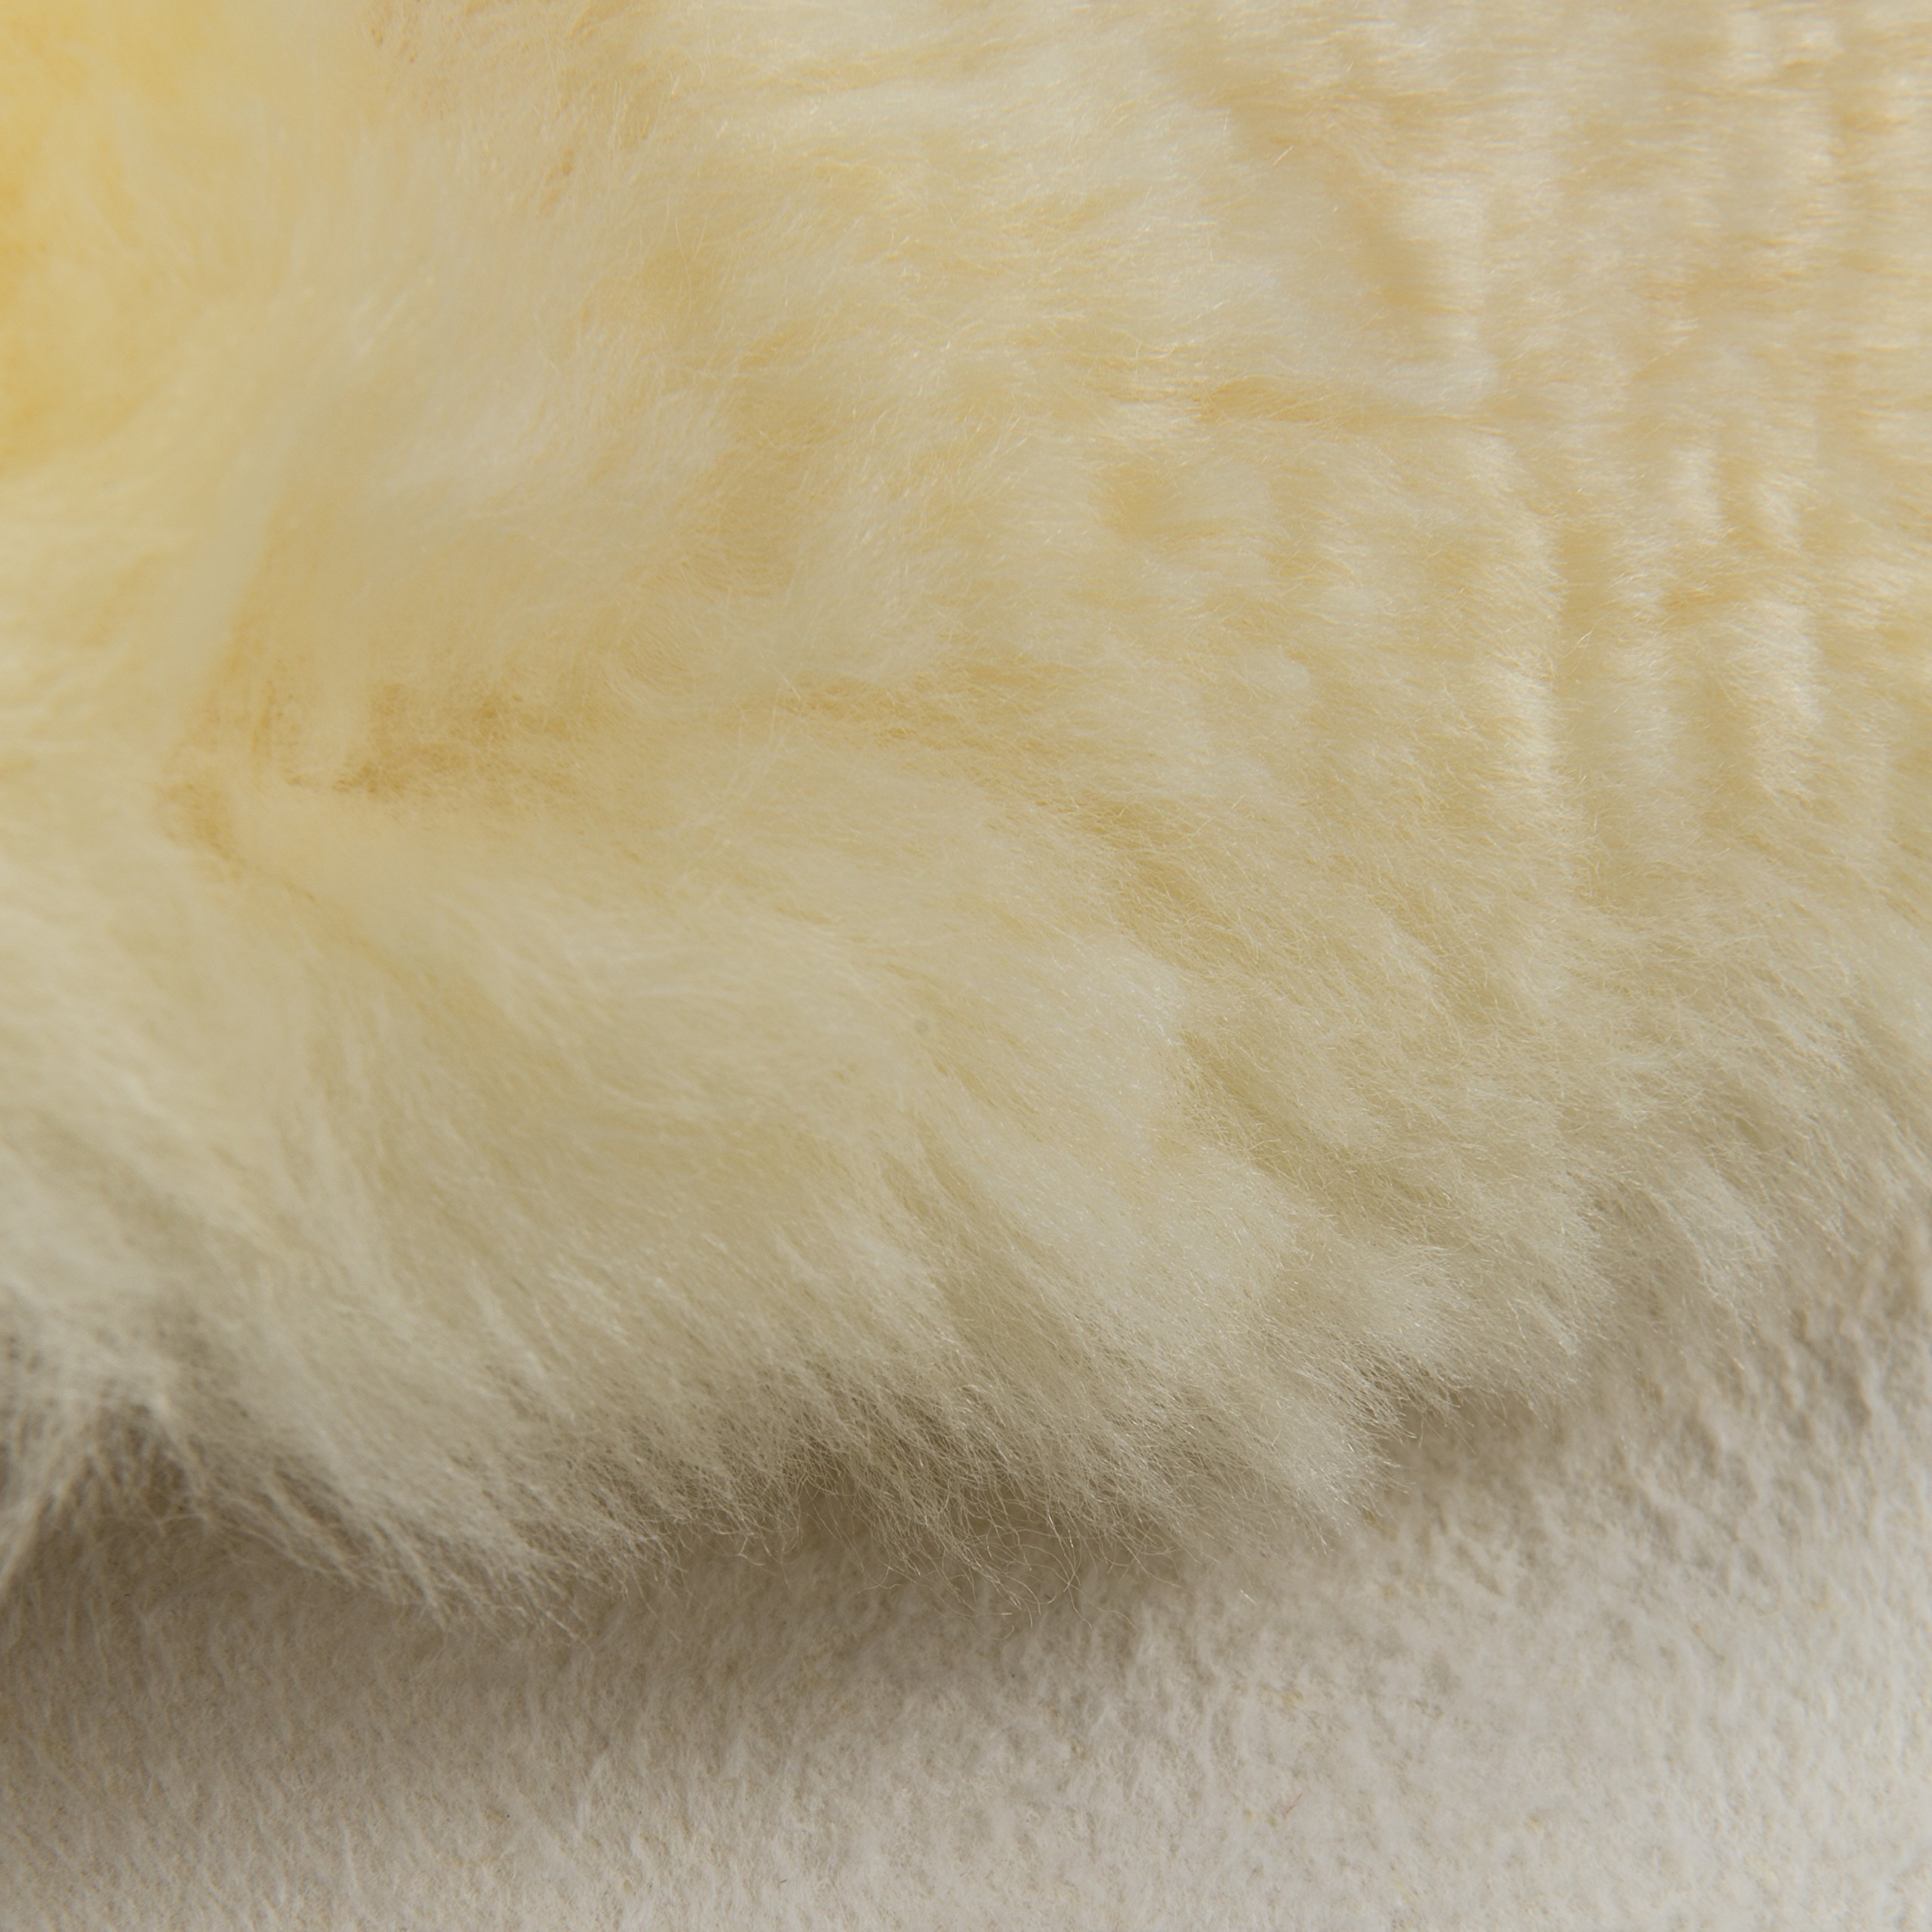 DMI Natural Sheepskin Wool Comfort Mattress Bed Pad Bed Mat, Washable, 8 to 9 Square Feet, Beige by Briggs (Image #3)